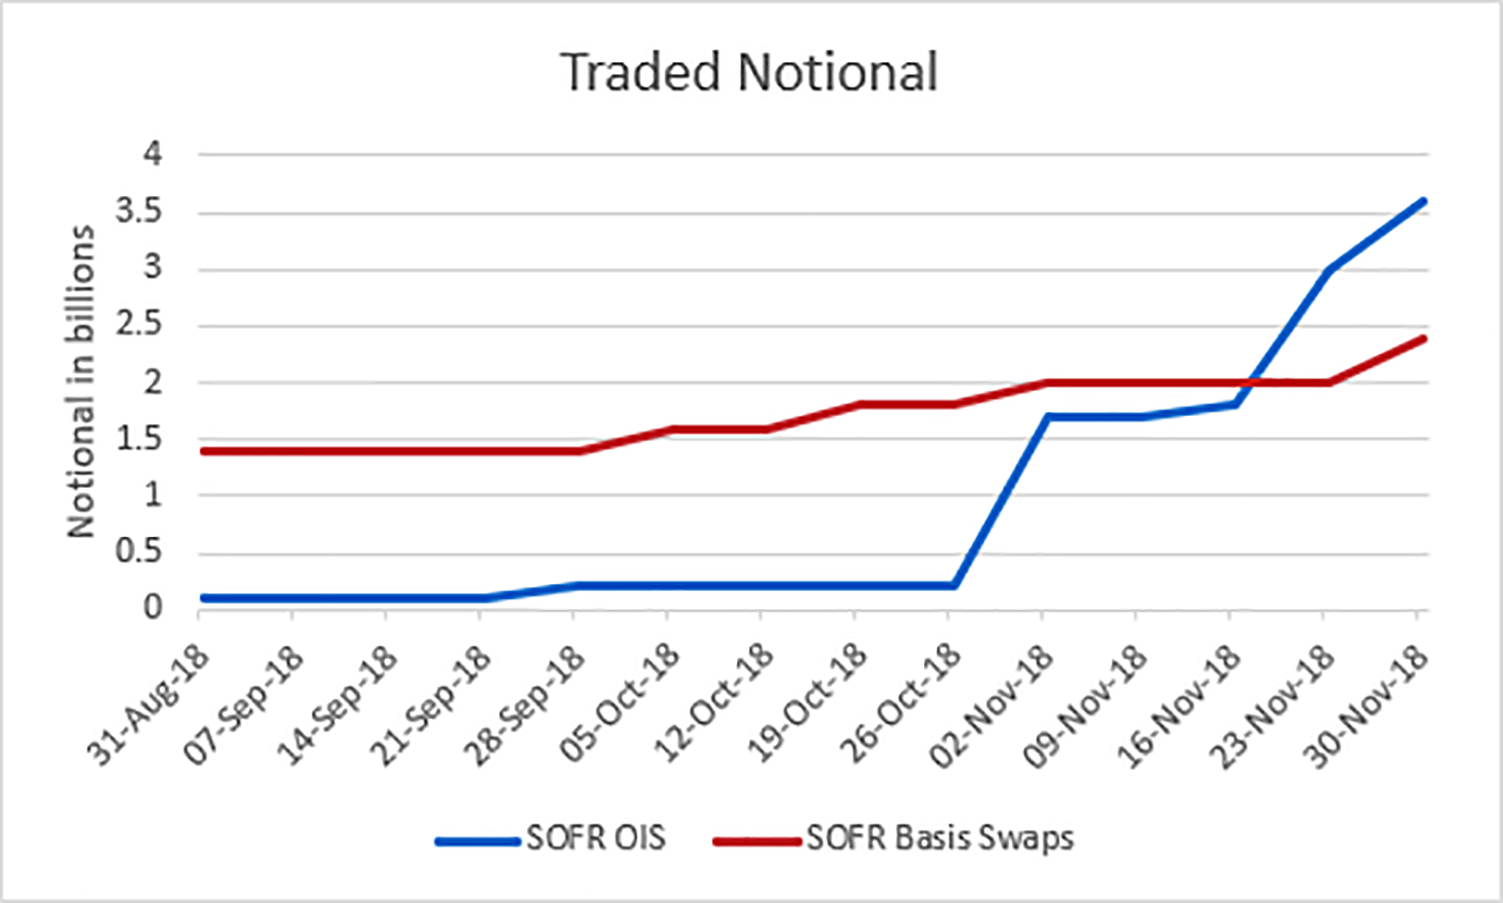 ISDA Analysis on SOFR Swaps Table - Traded Notional